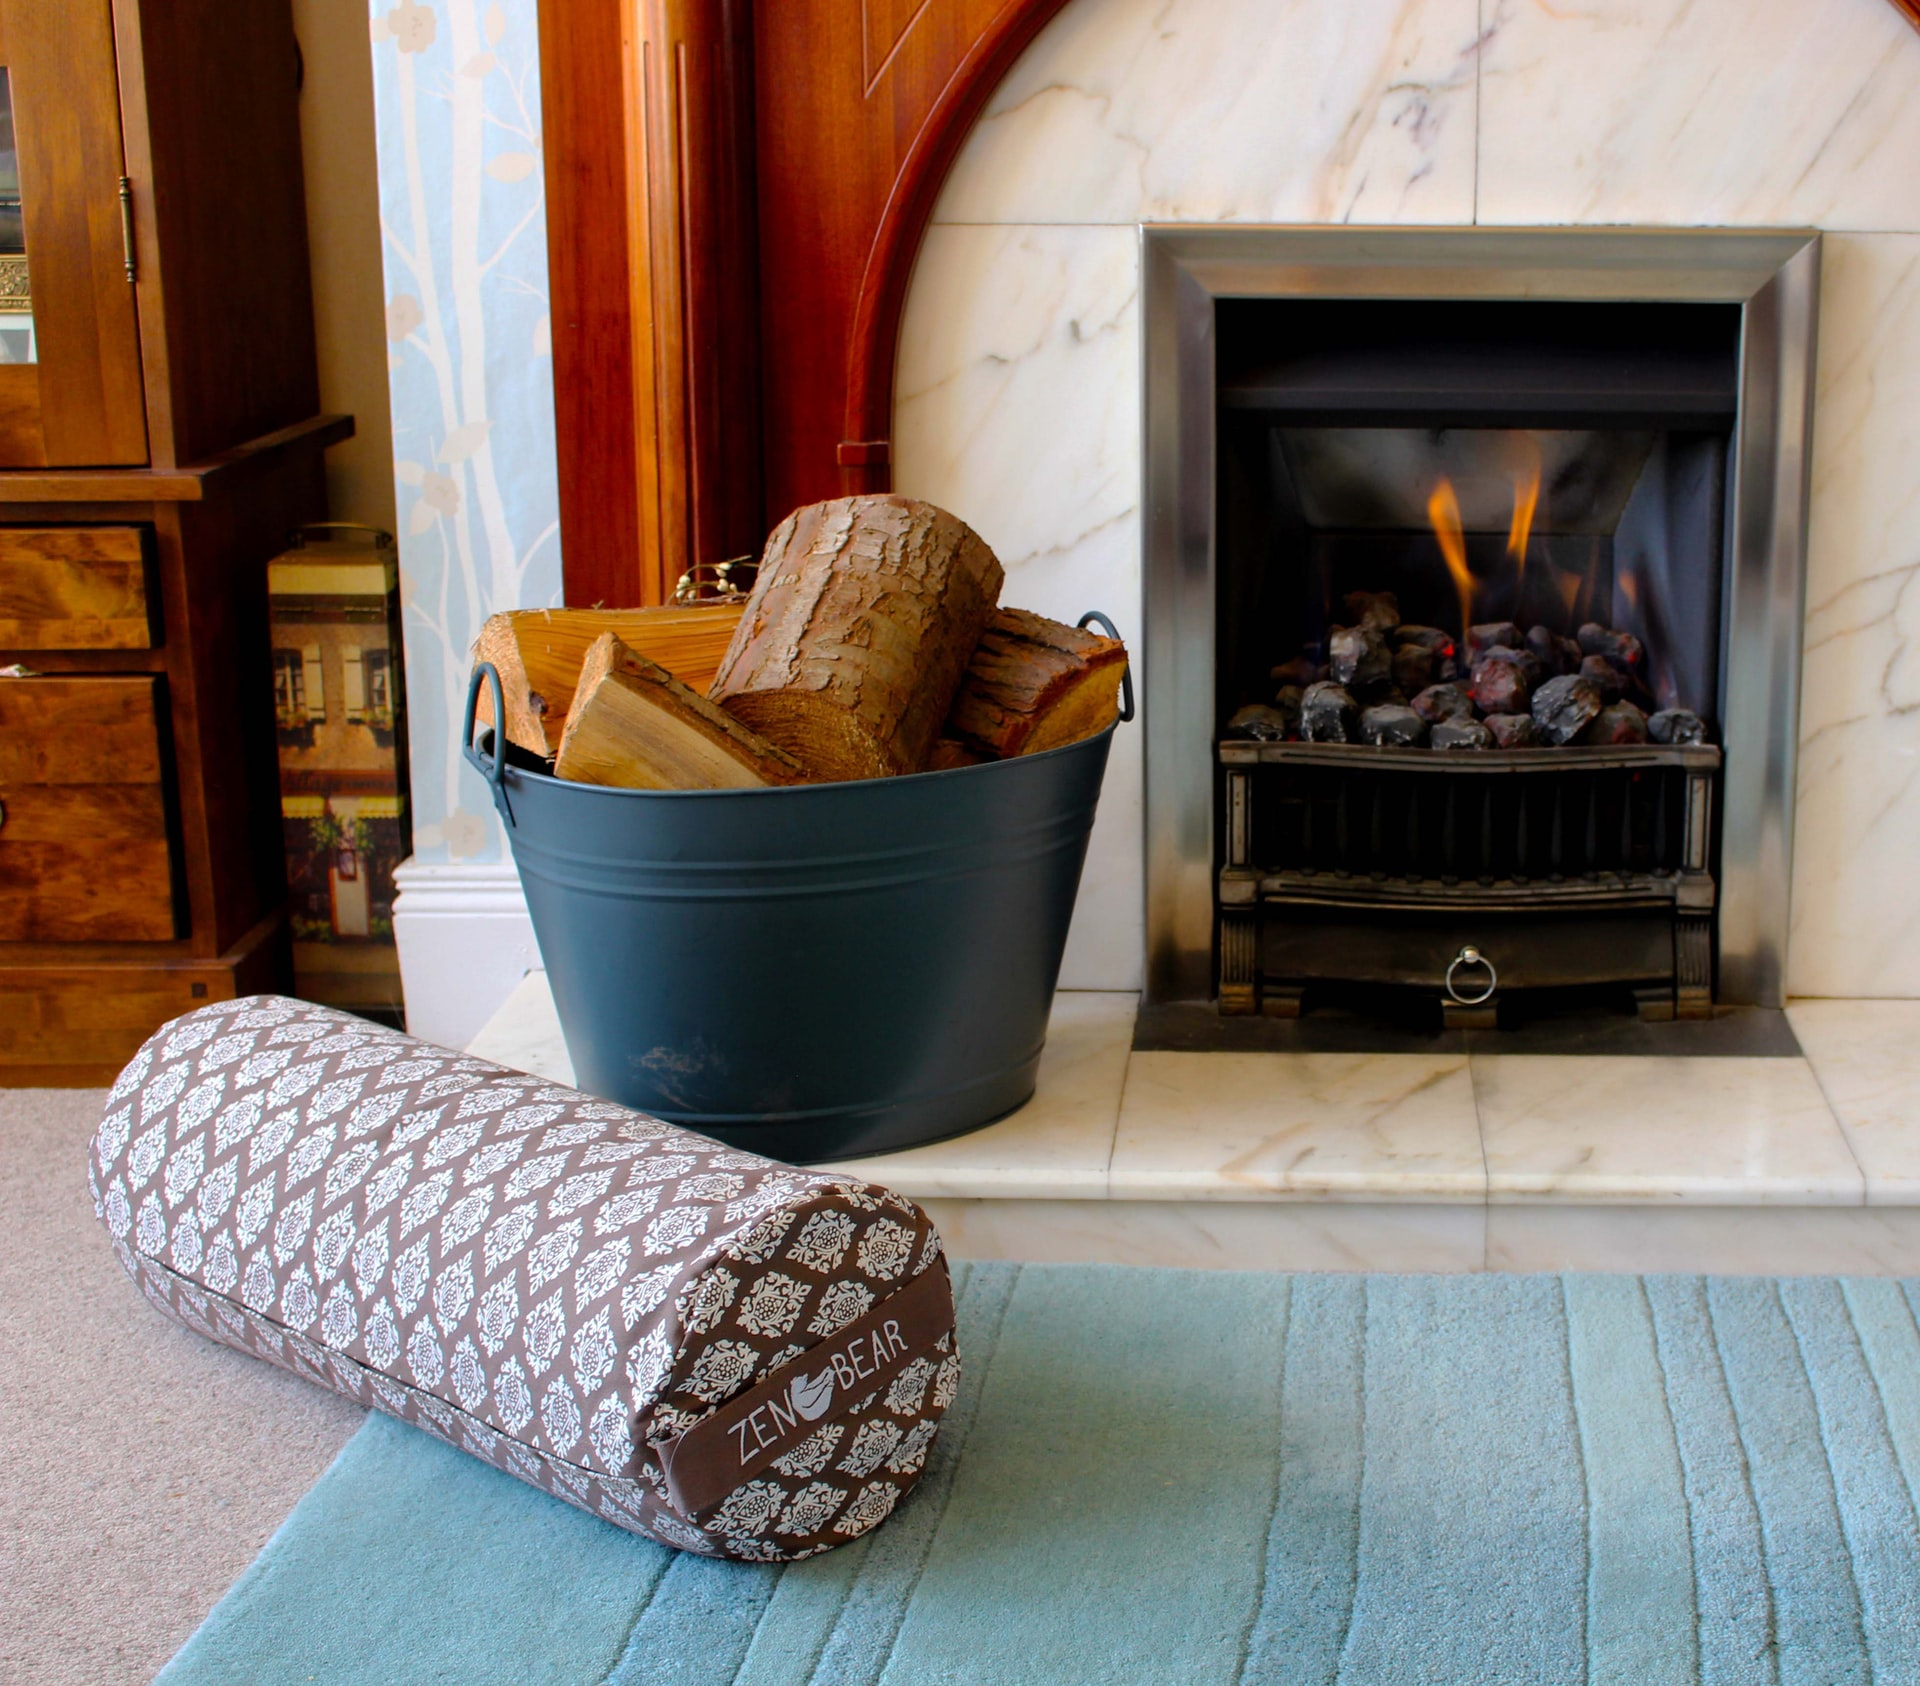 Ways to Make Your Stockport Home a Cosy Retreat